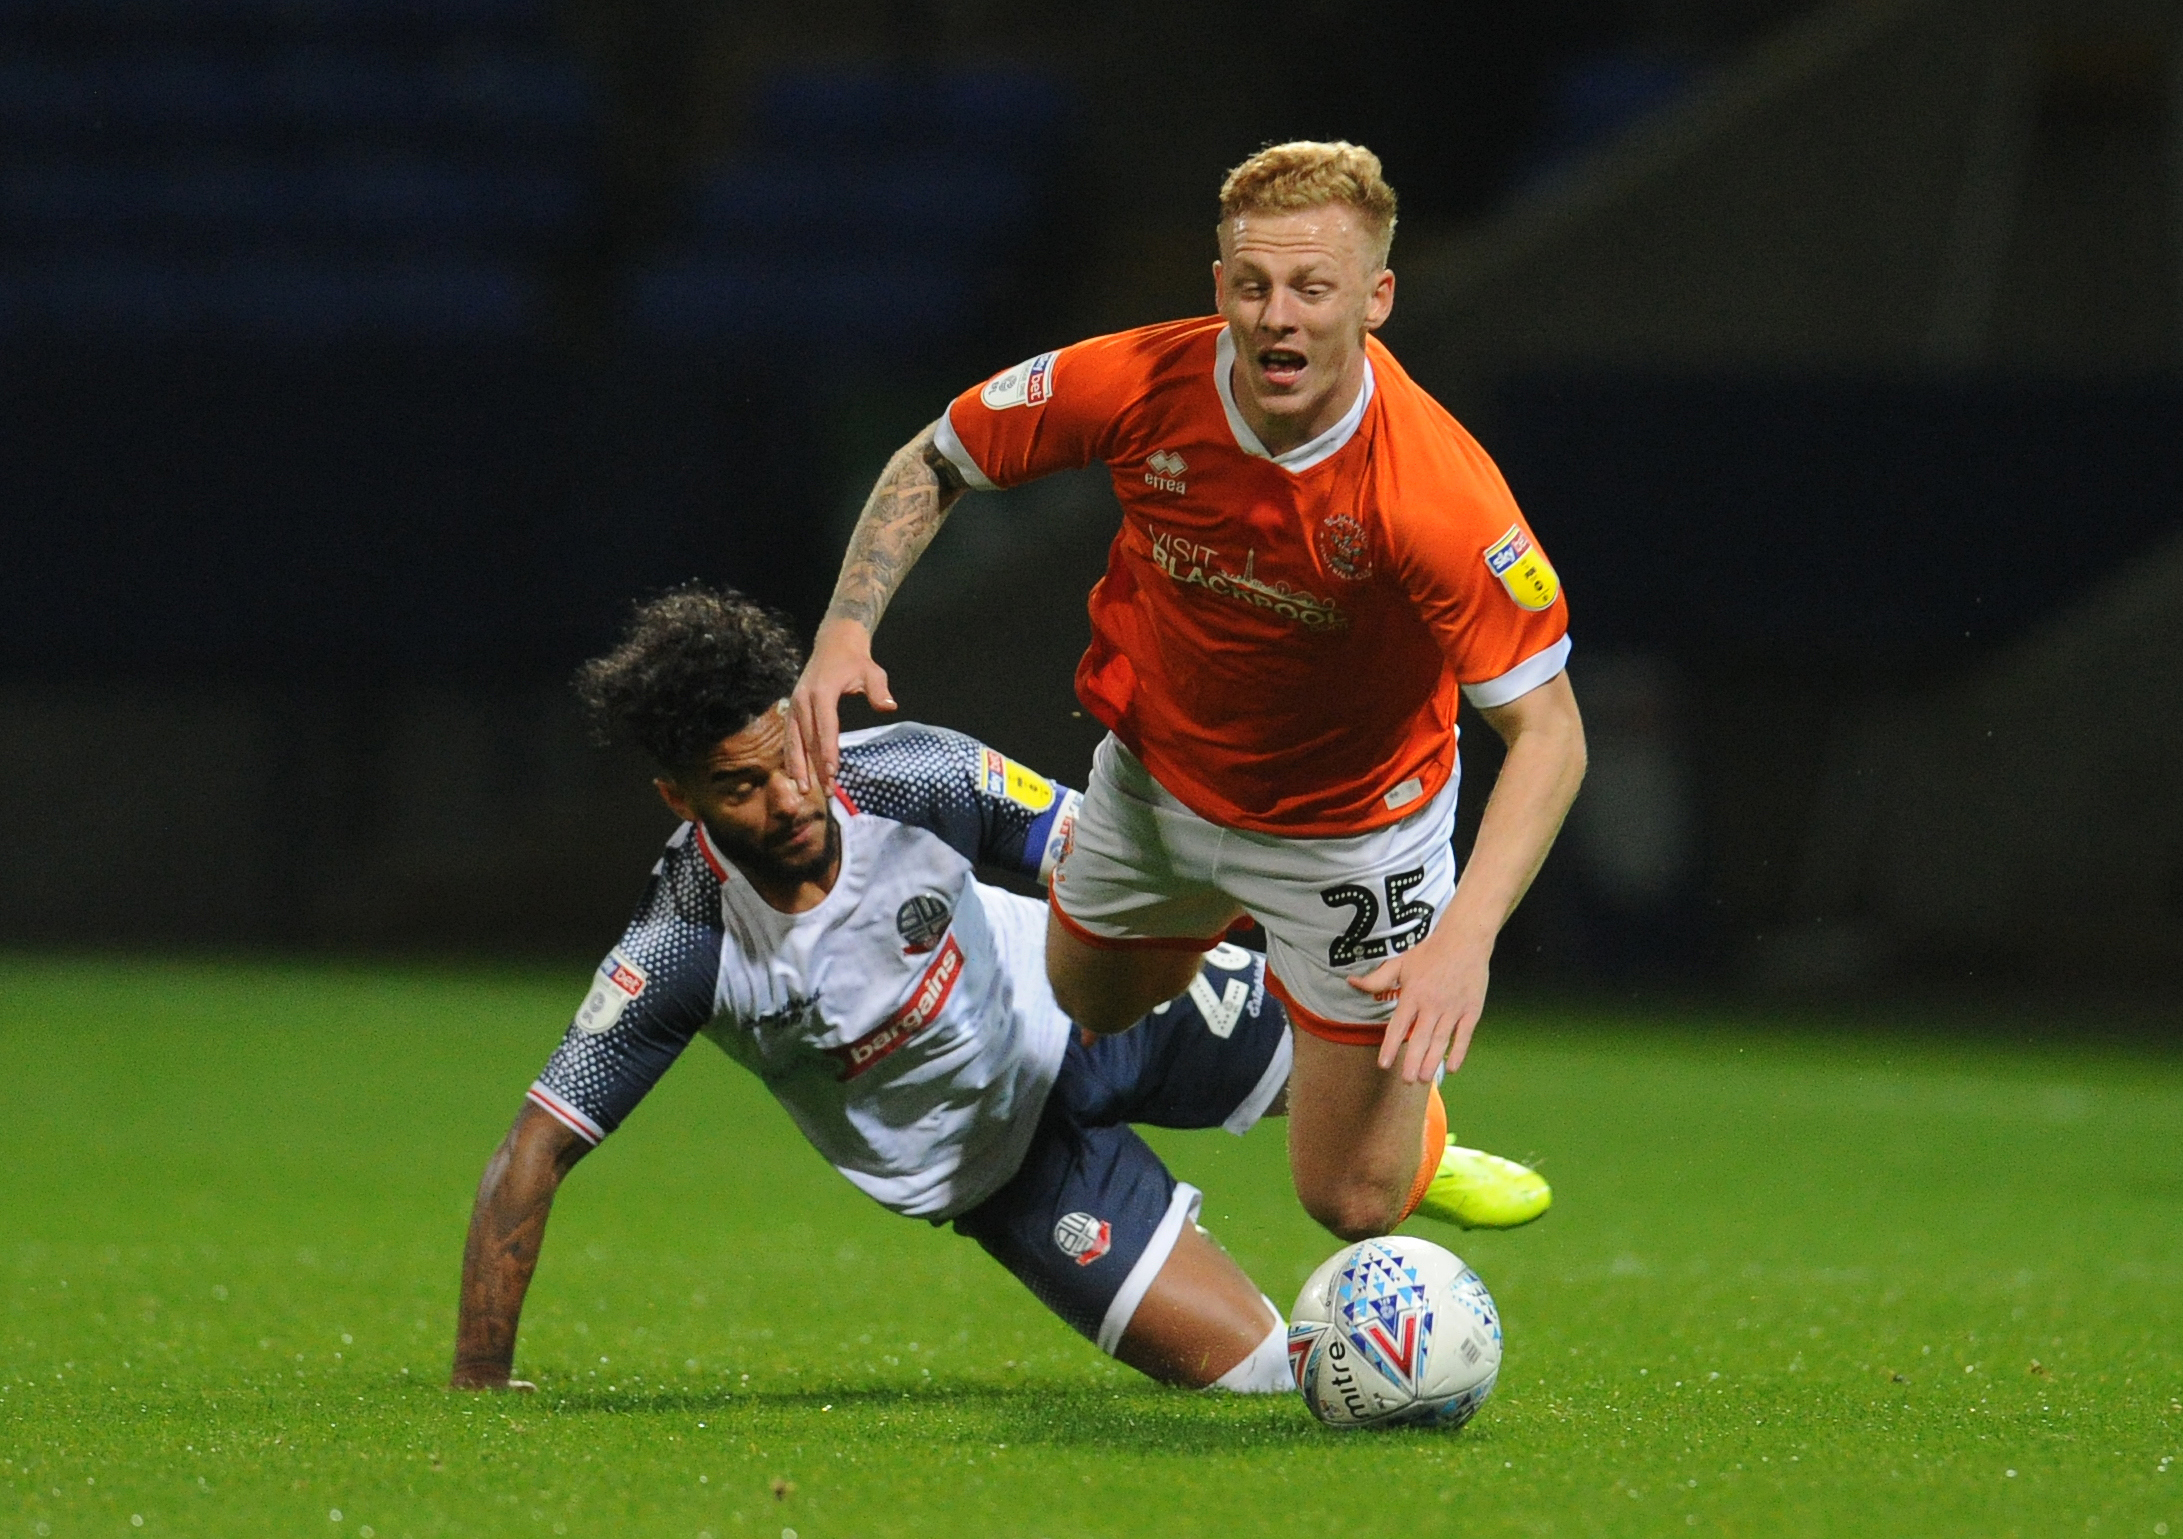 Bolton Wanderers v Blackpool - Sky Bet League One